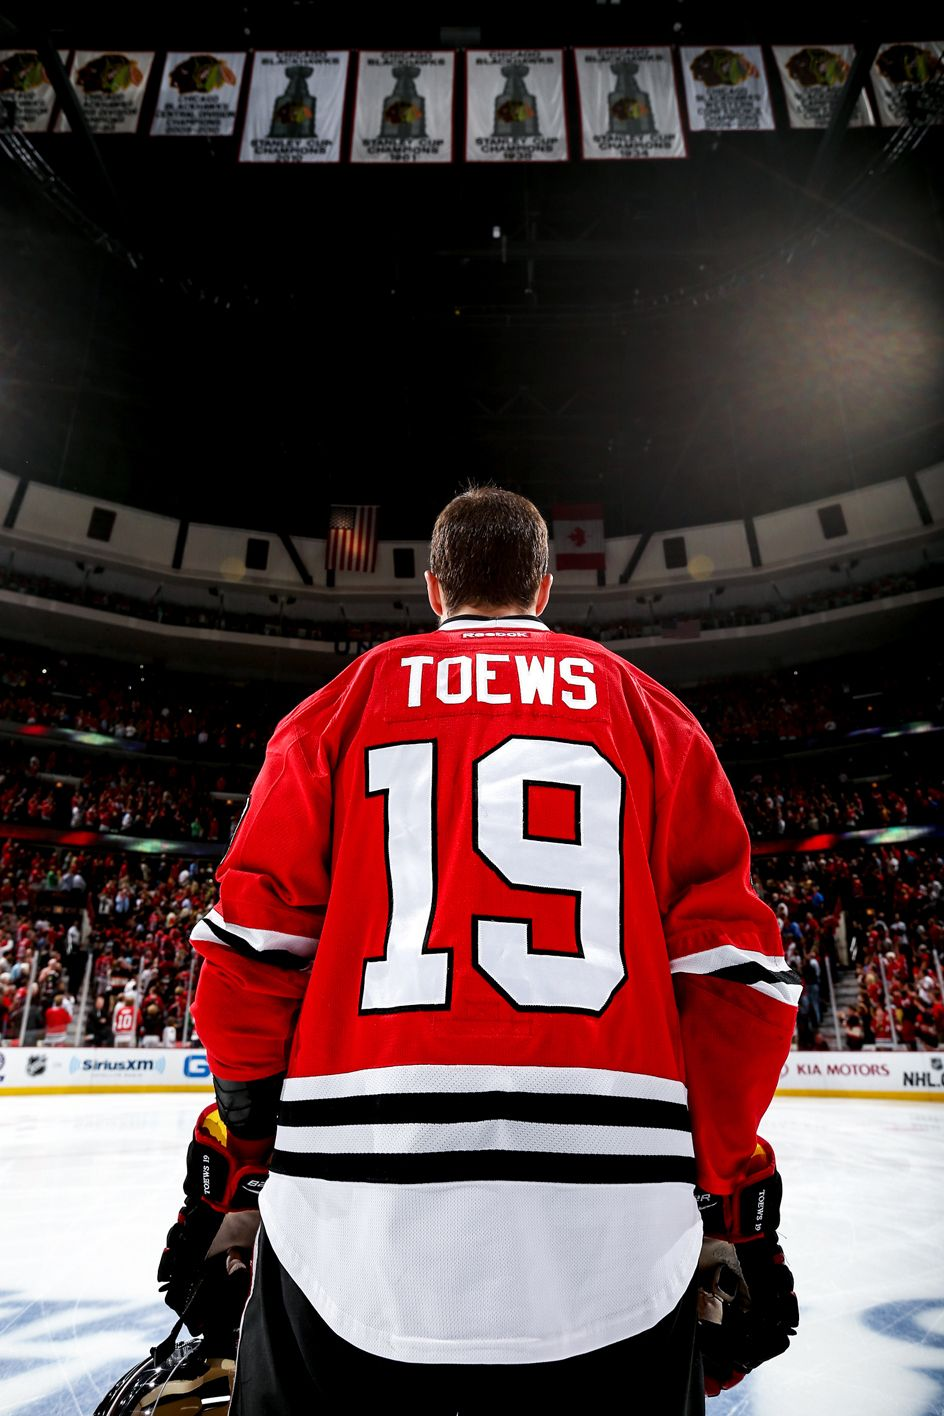 Stanley cup final game 5 vs boston chicago blackhawks - Nhl hockey wallpapers ...